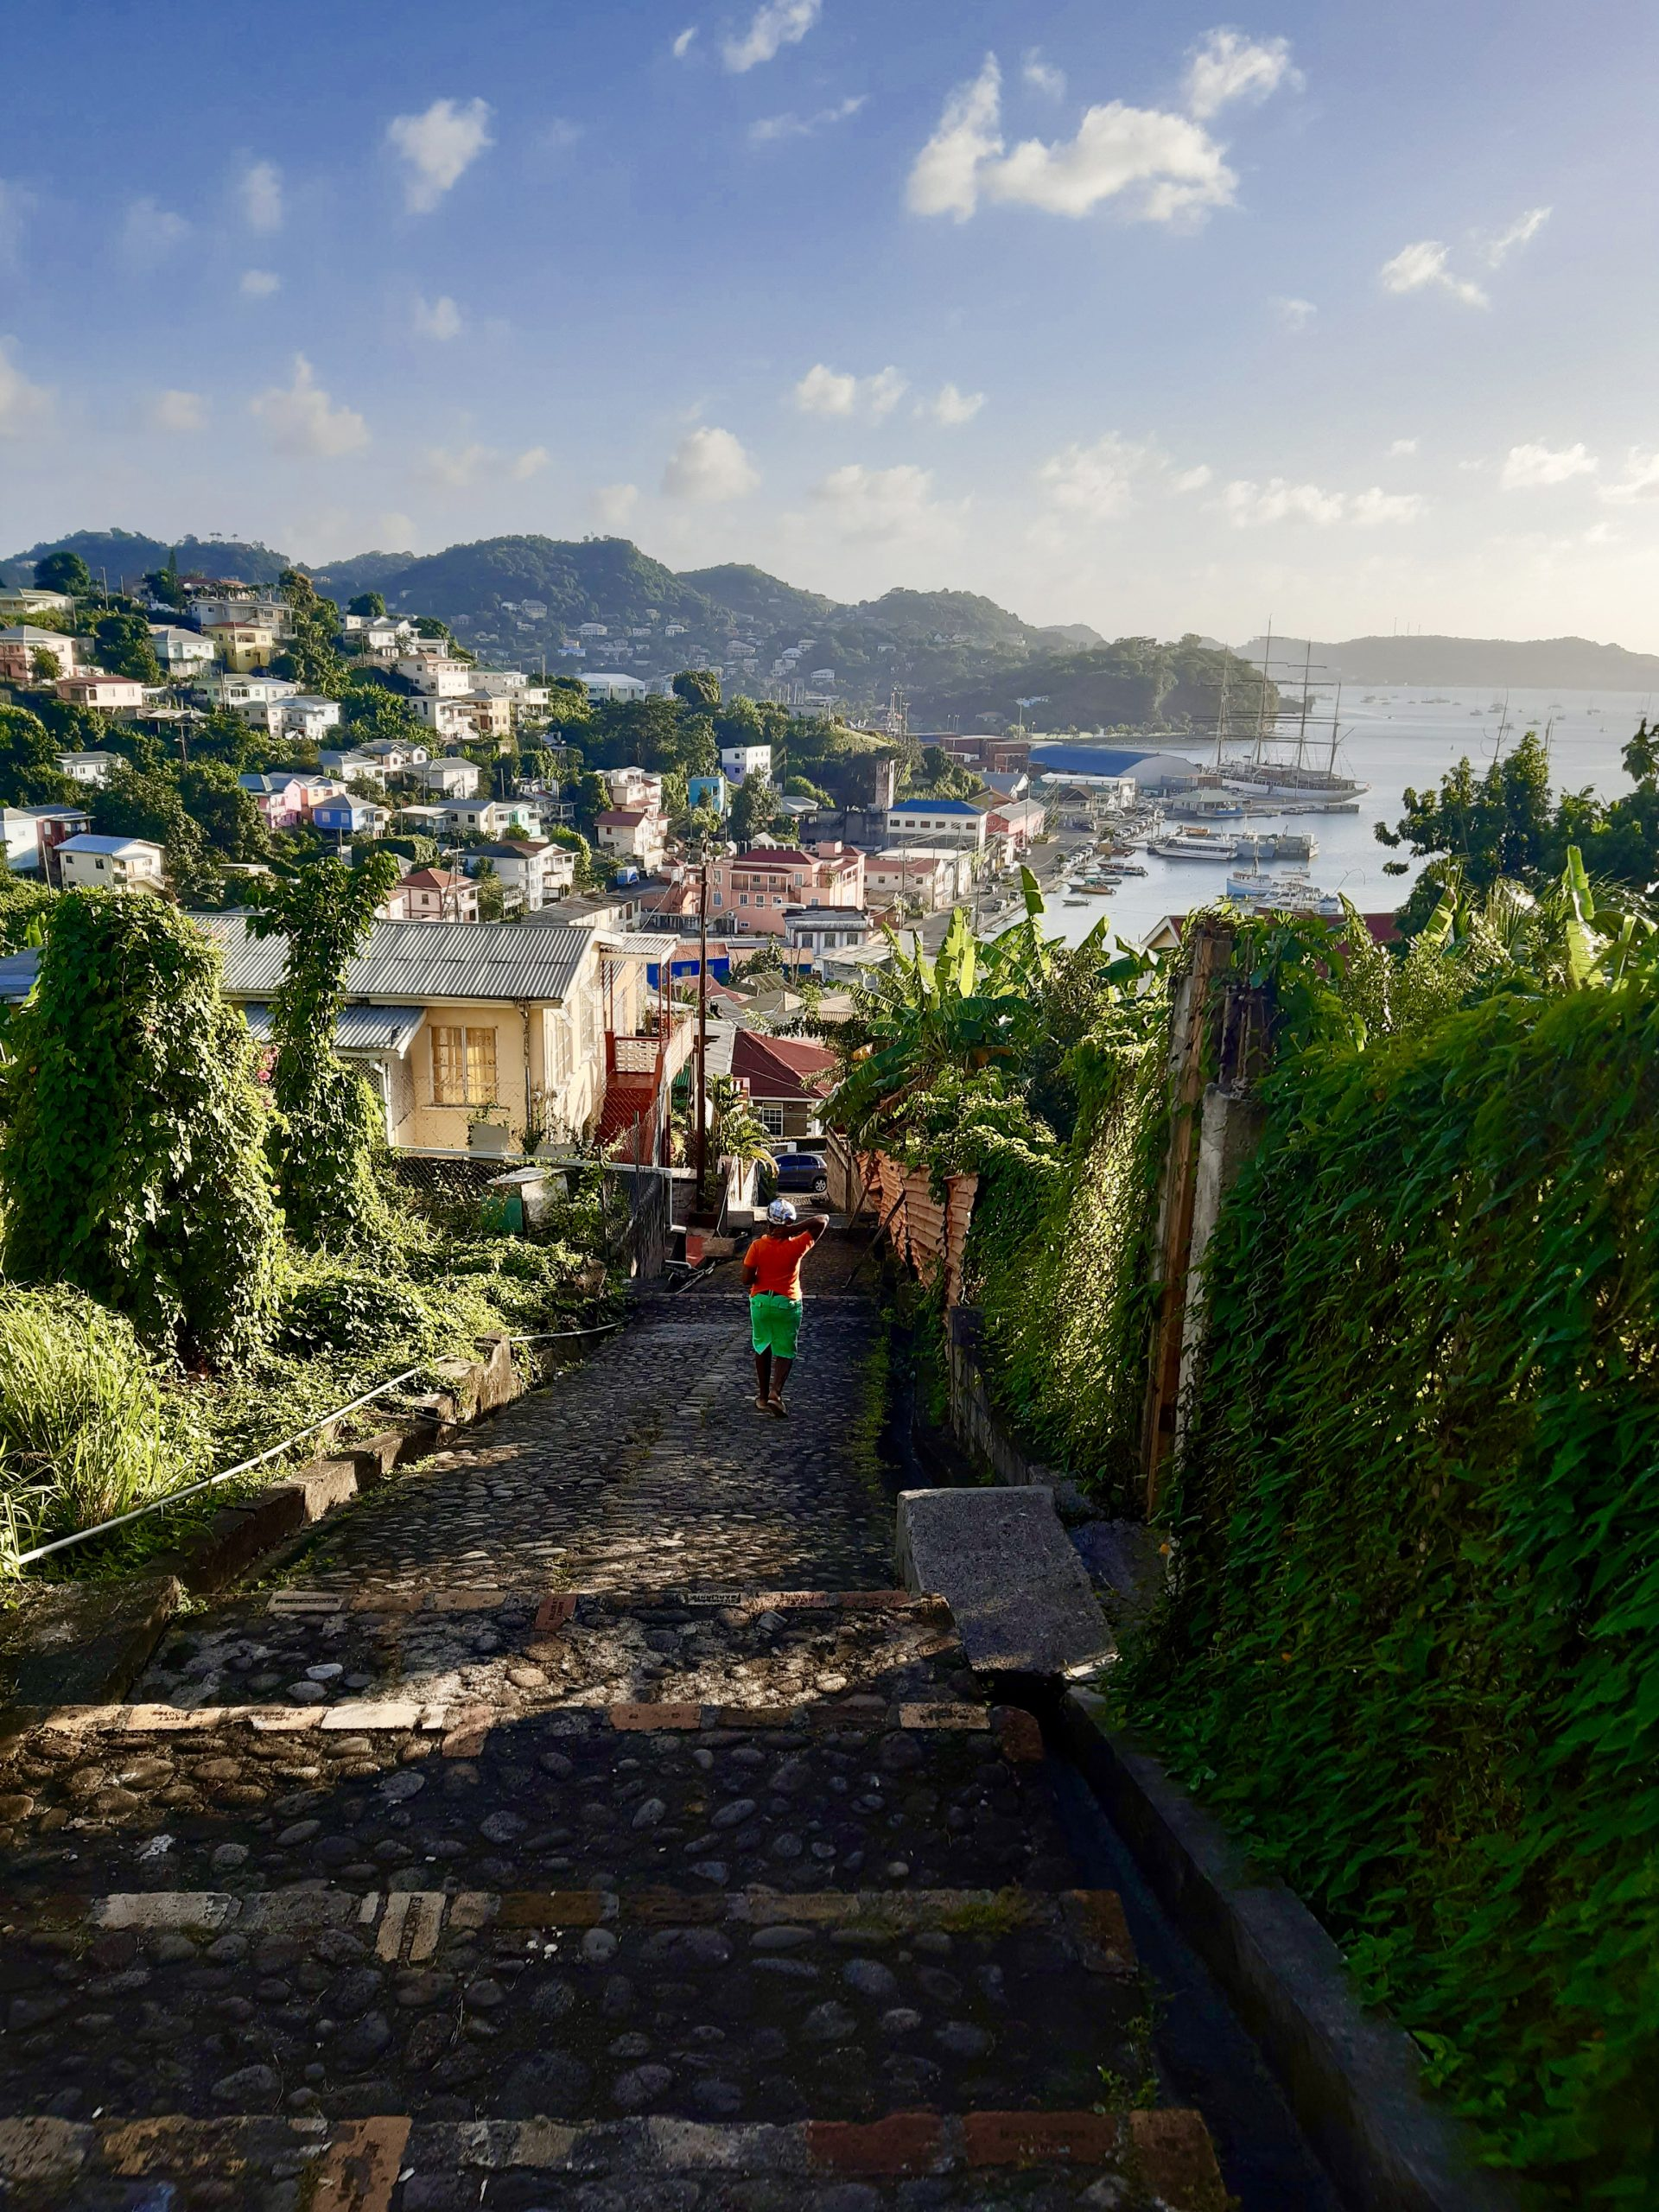 St.-Georges-Grenada-GD-31_12_19-©-Roman-Goly-5-scaled.jpeg